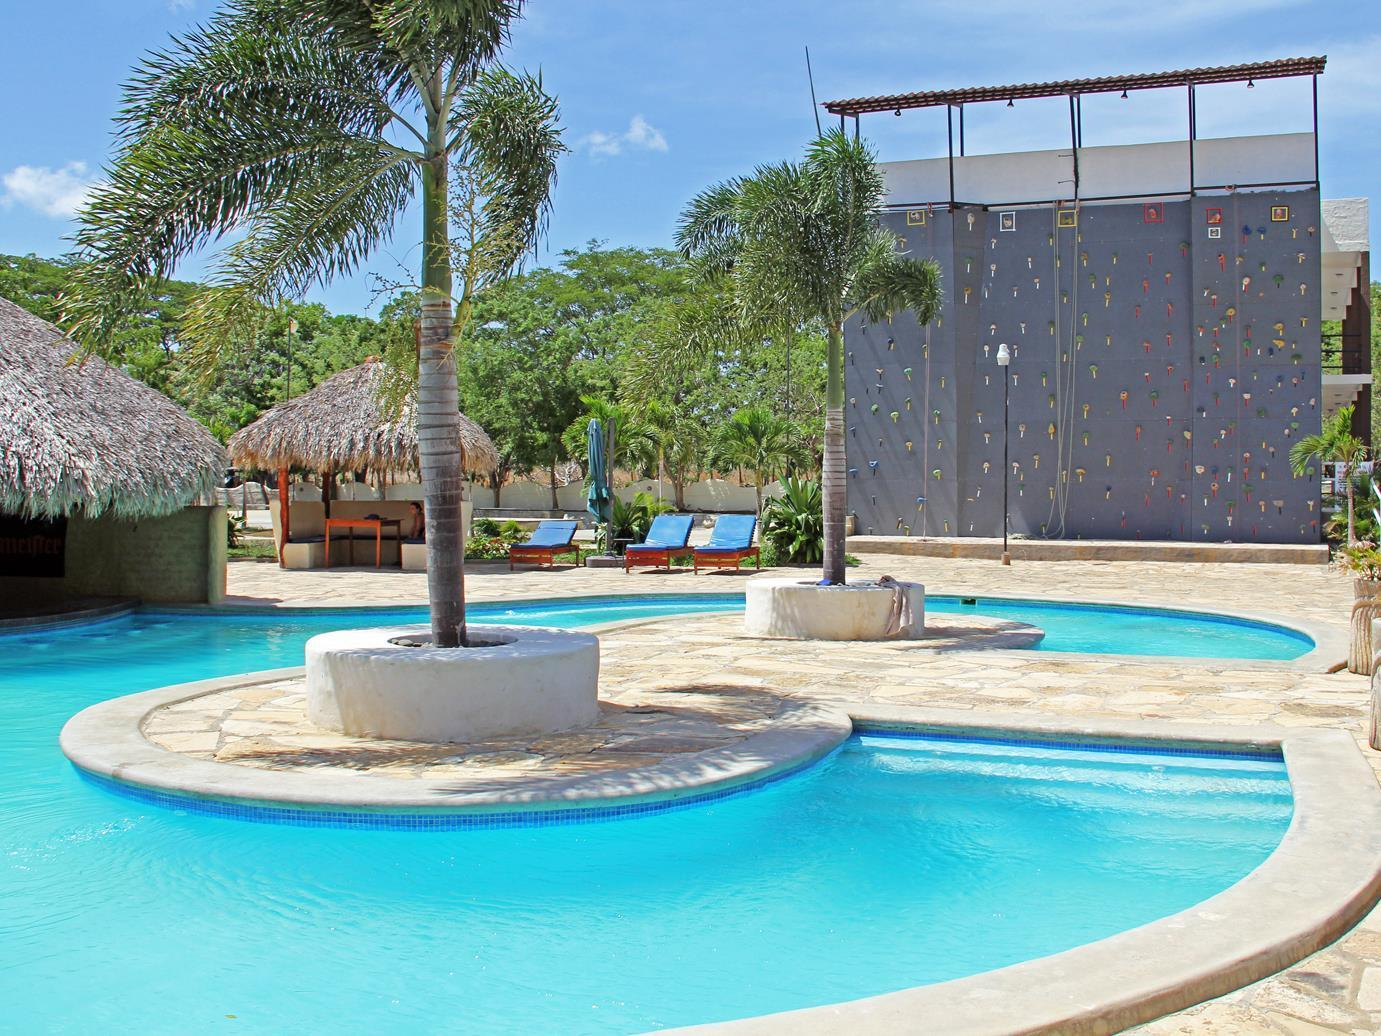 Surf Ranch Hotel & Resort - San Juan Del Sur